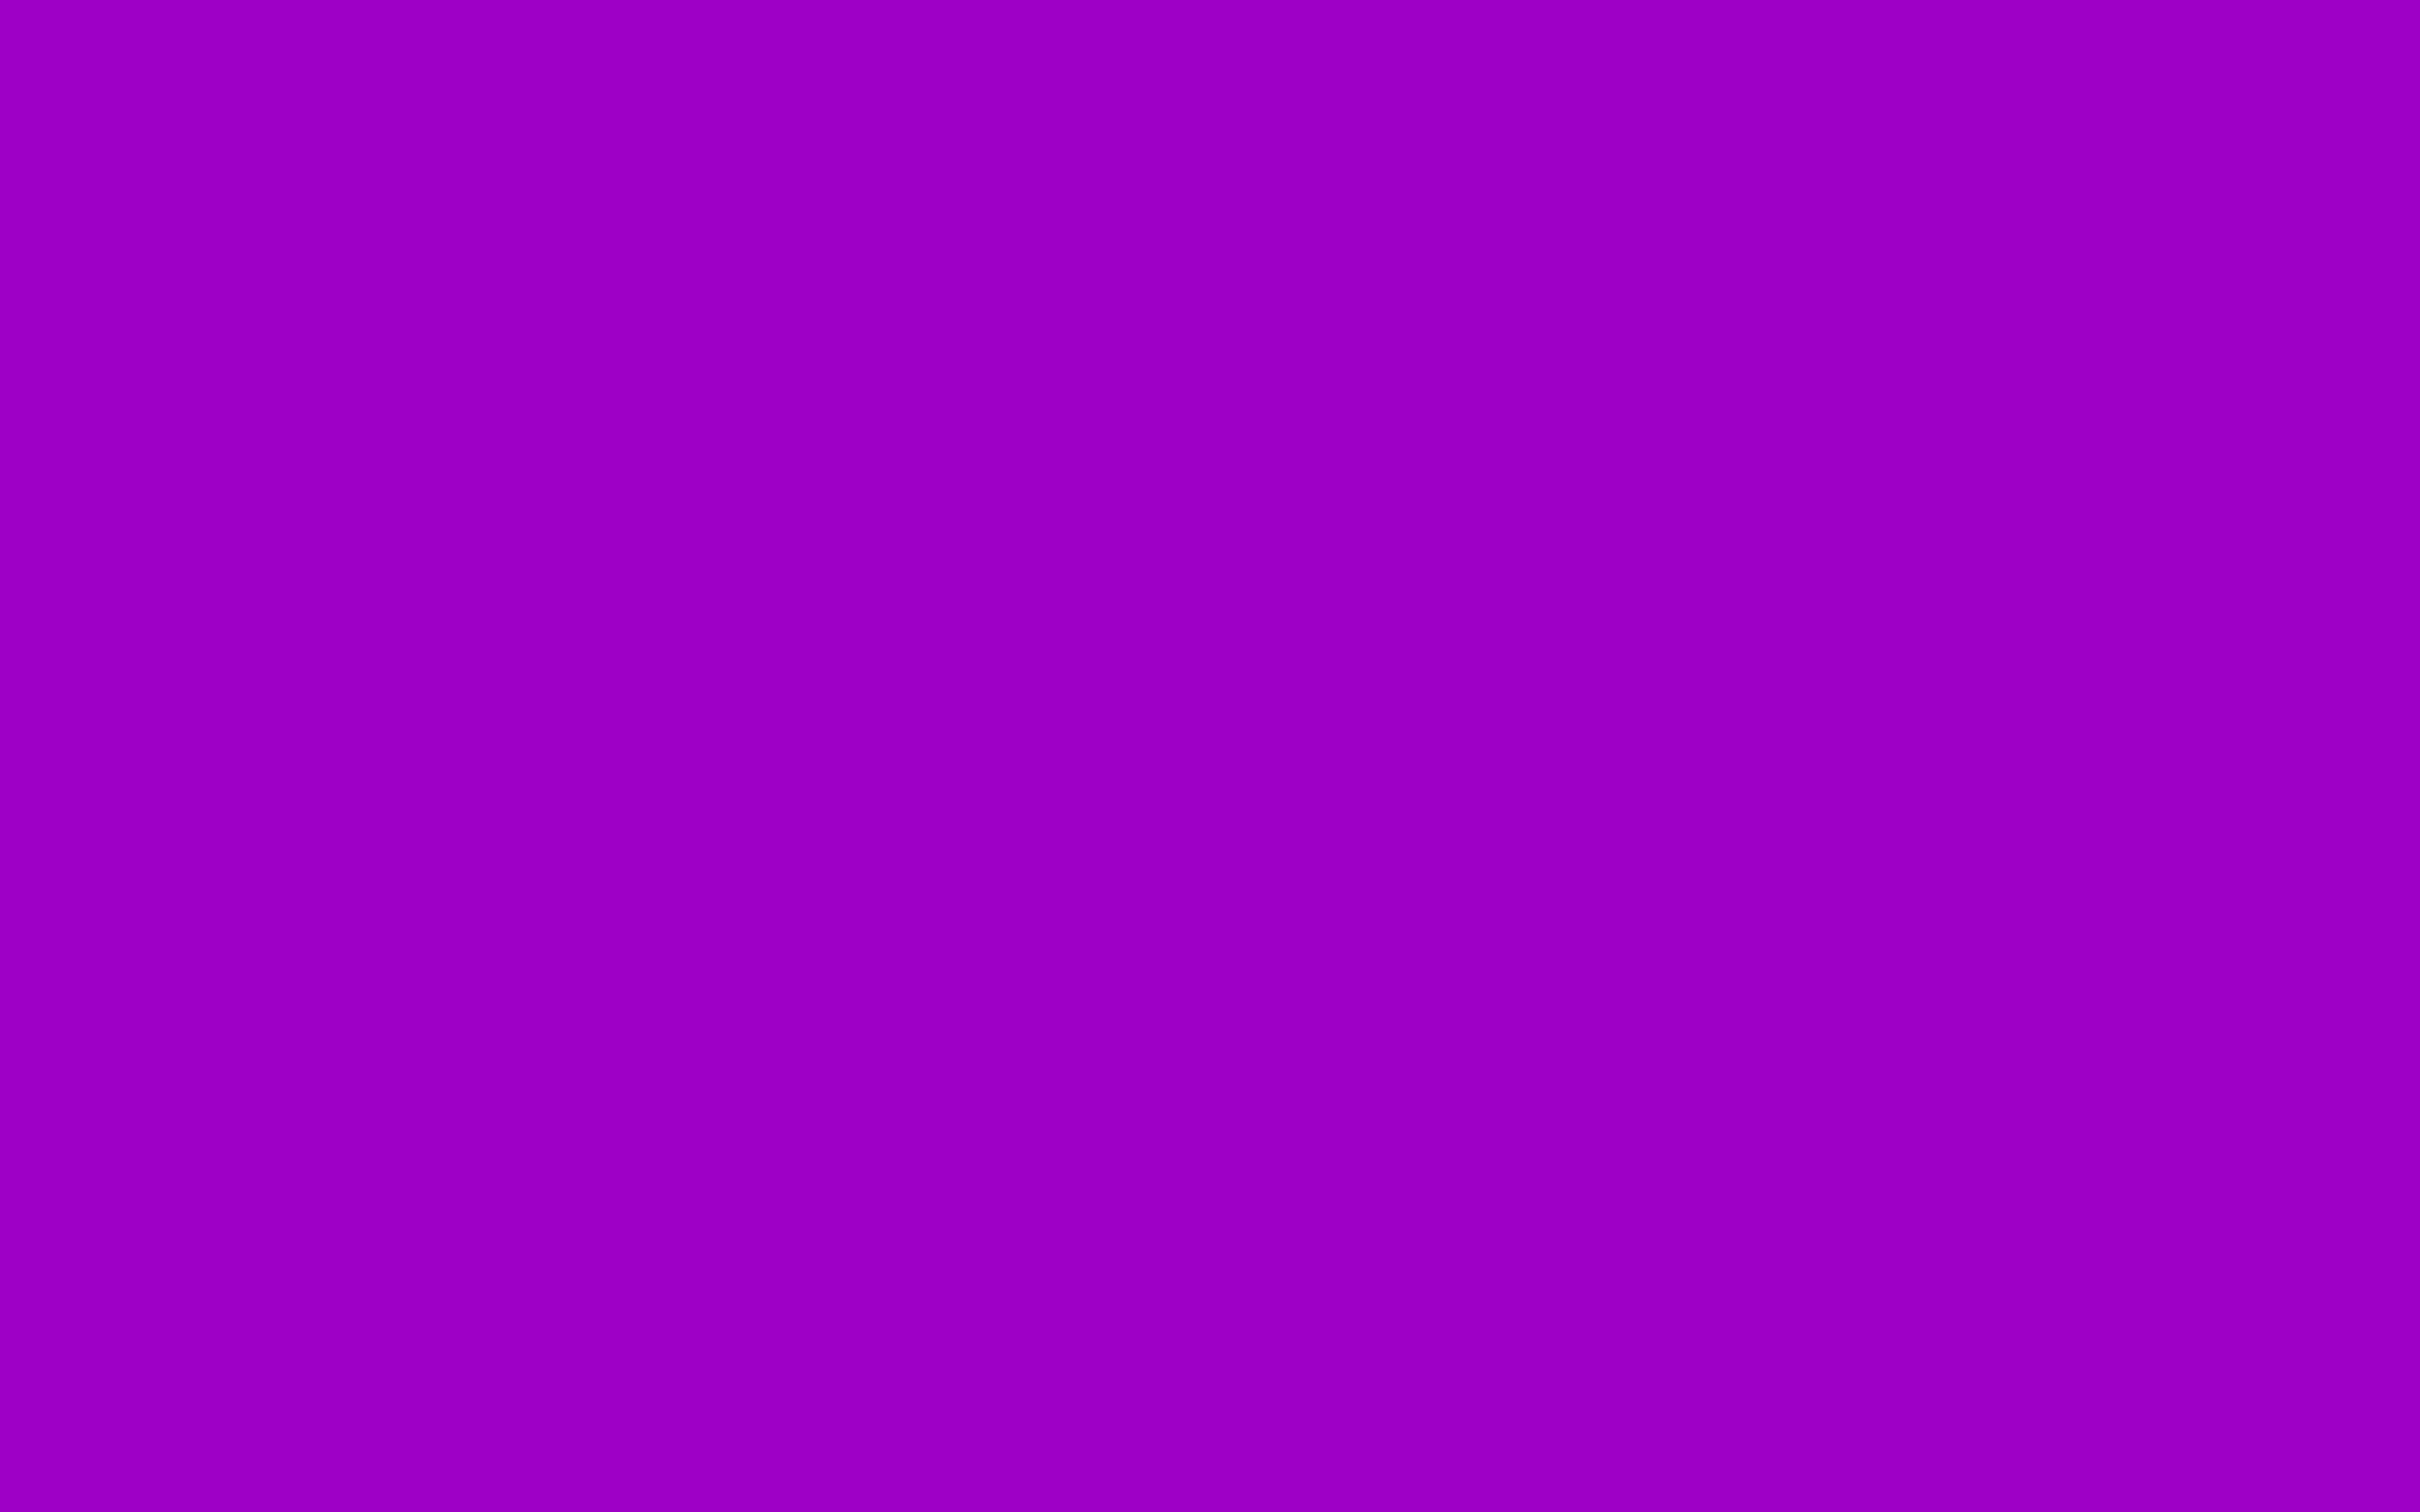 2560x1600 Purple Munsell Solid Color Background